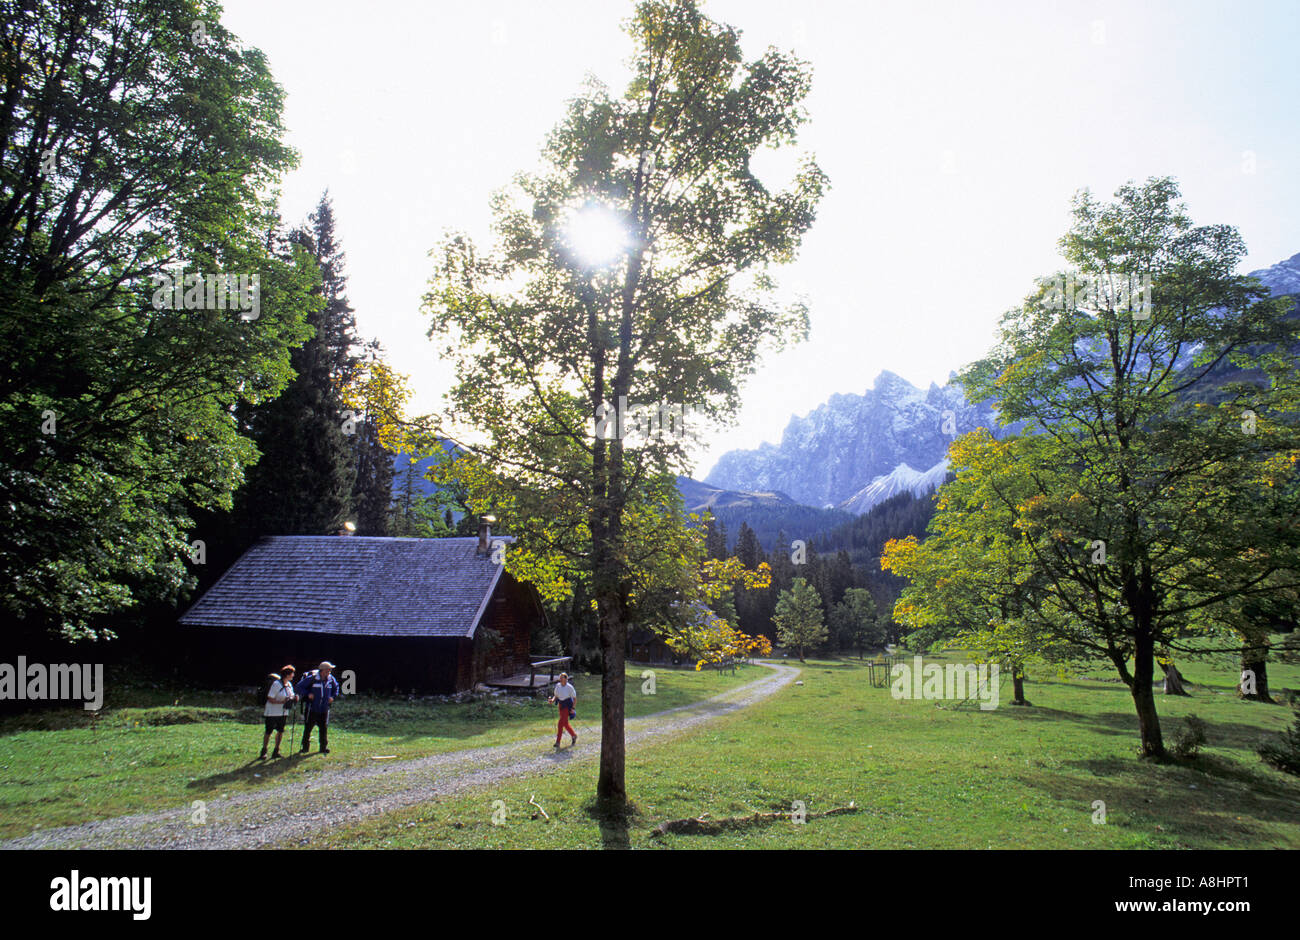 Thee hikers near the Puerschhaus at Kleiner Ahornboden Germany - Stock Image